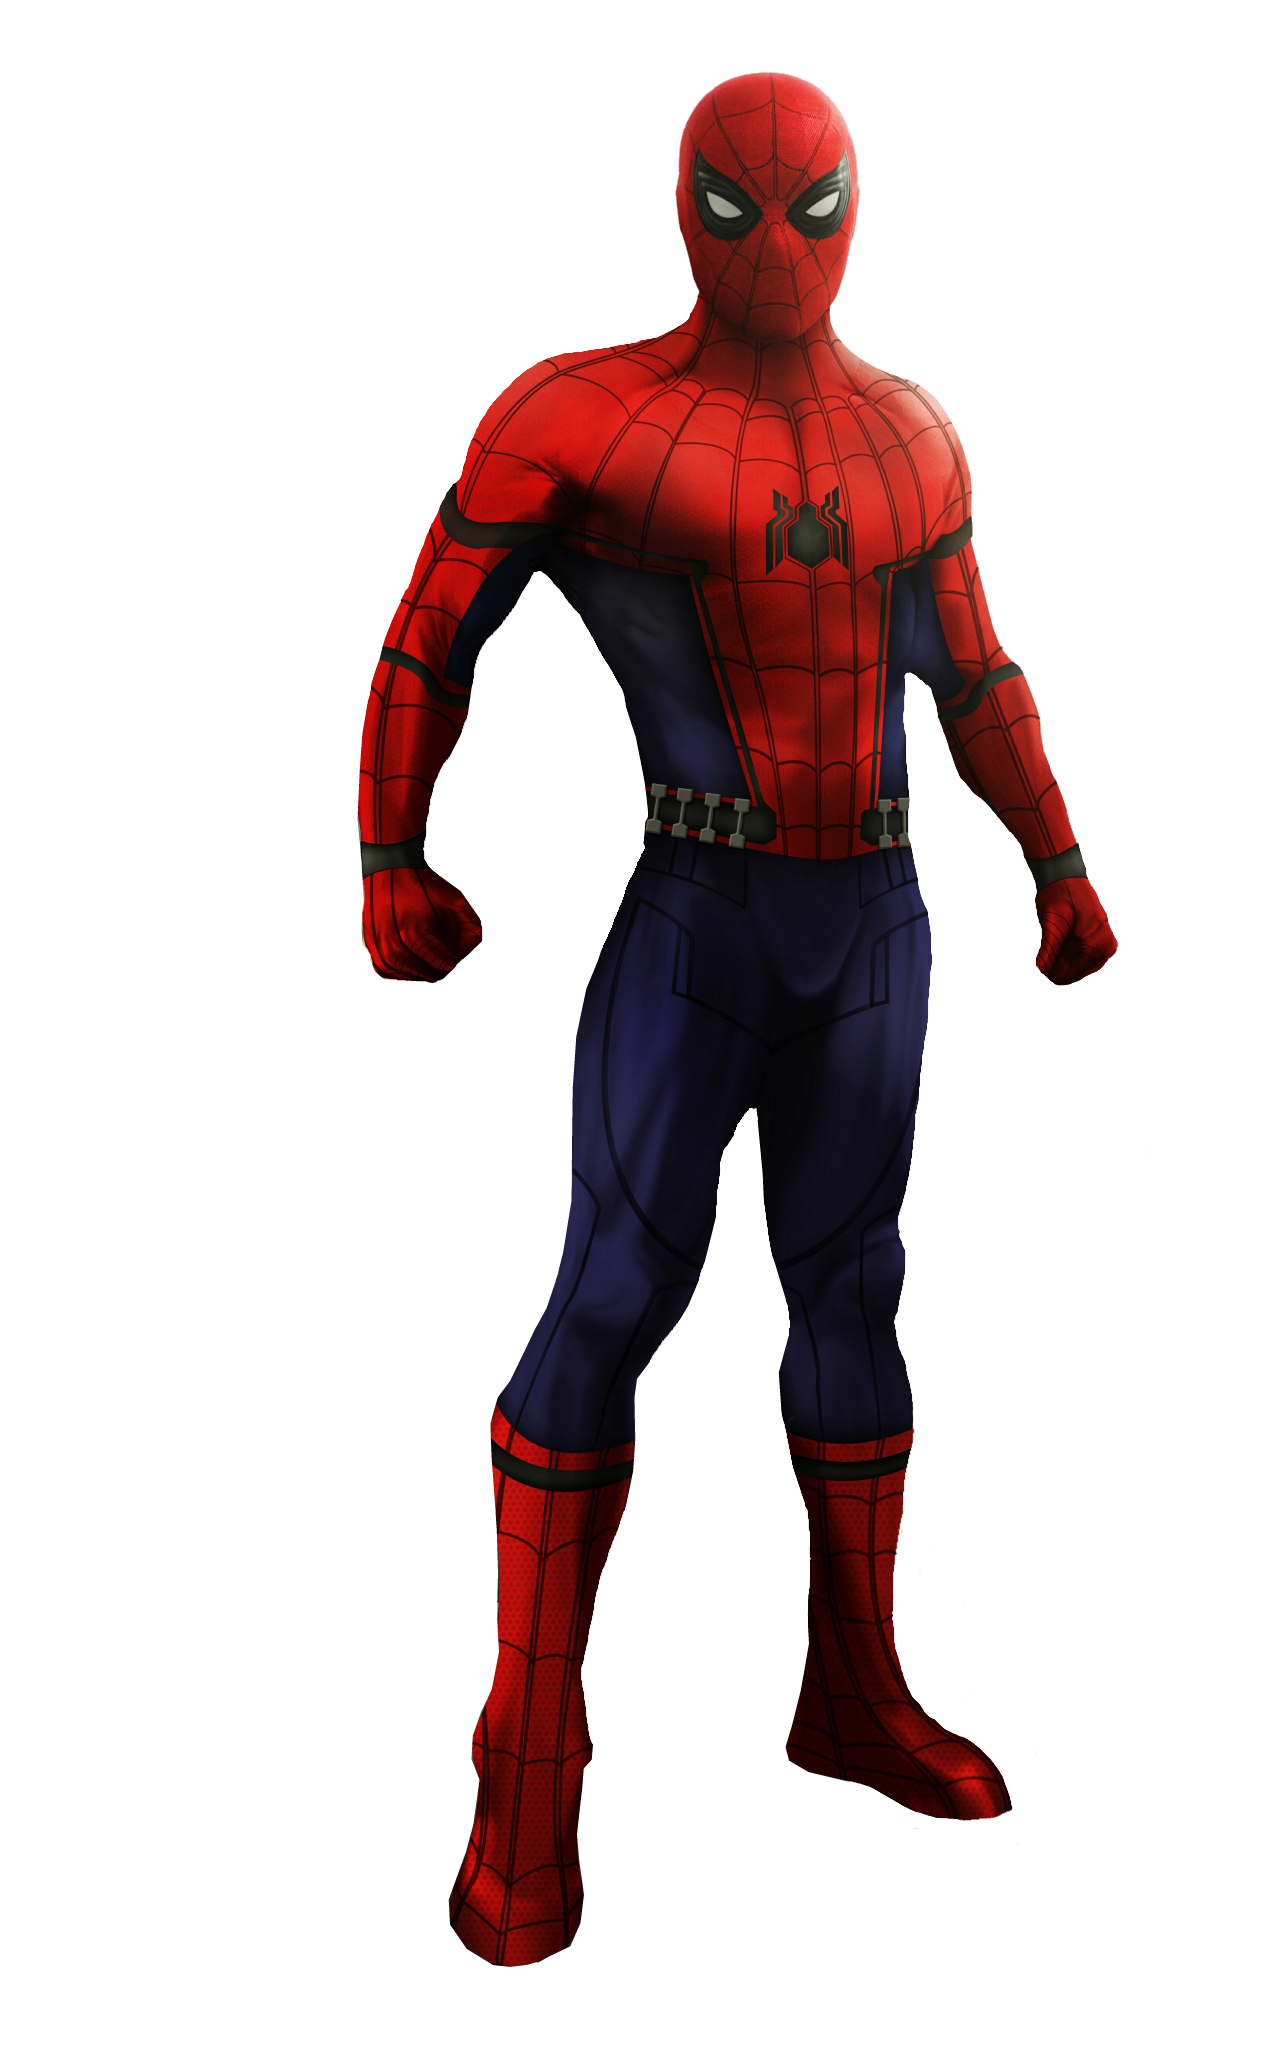 3d spider man transparent - photo #3